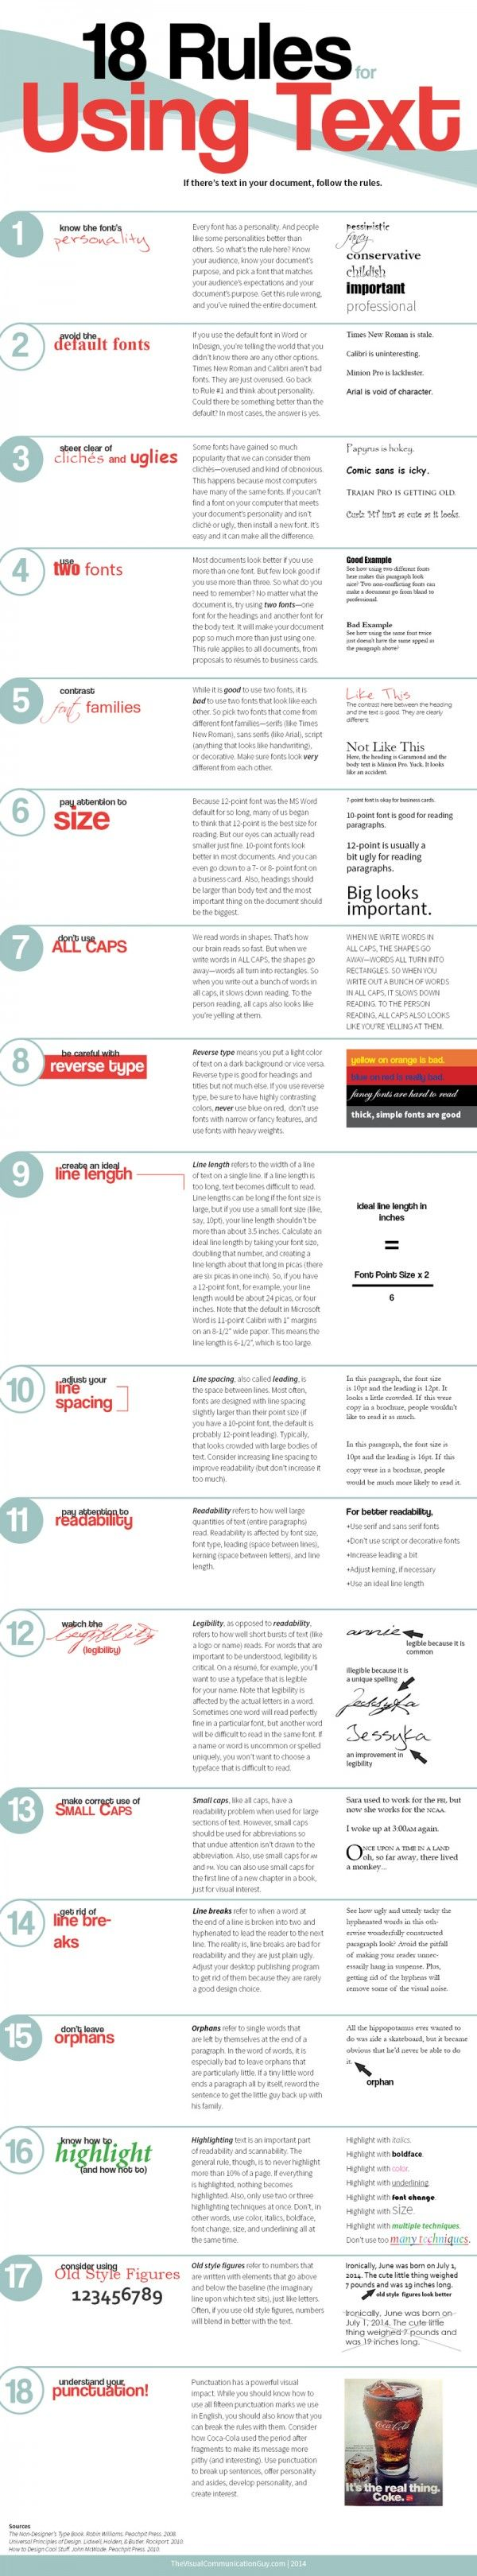 best images about design resumes simple 18 rules for using text bespoke social media marketing